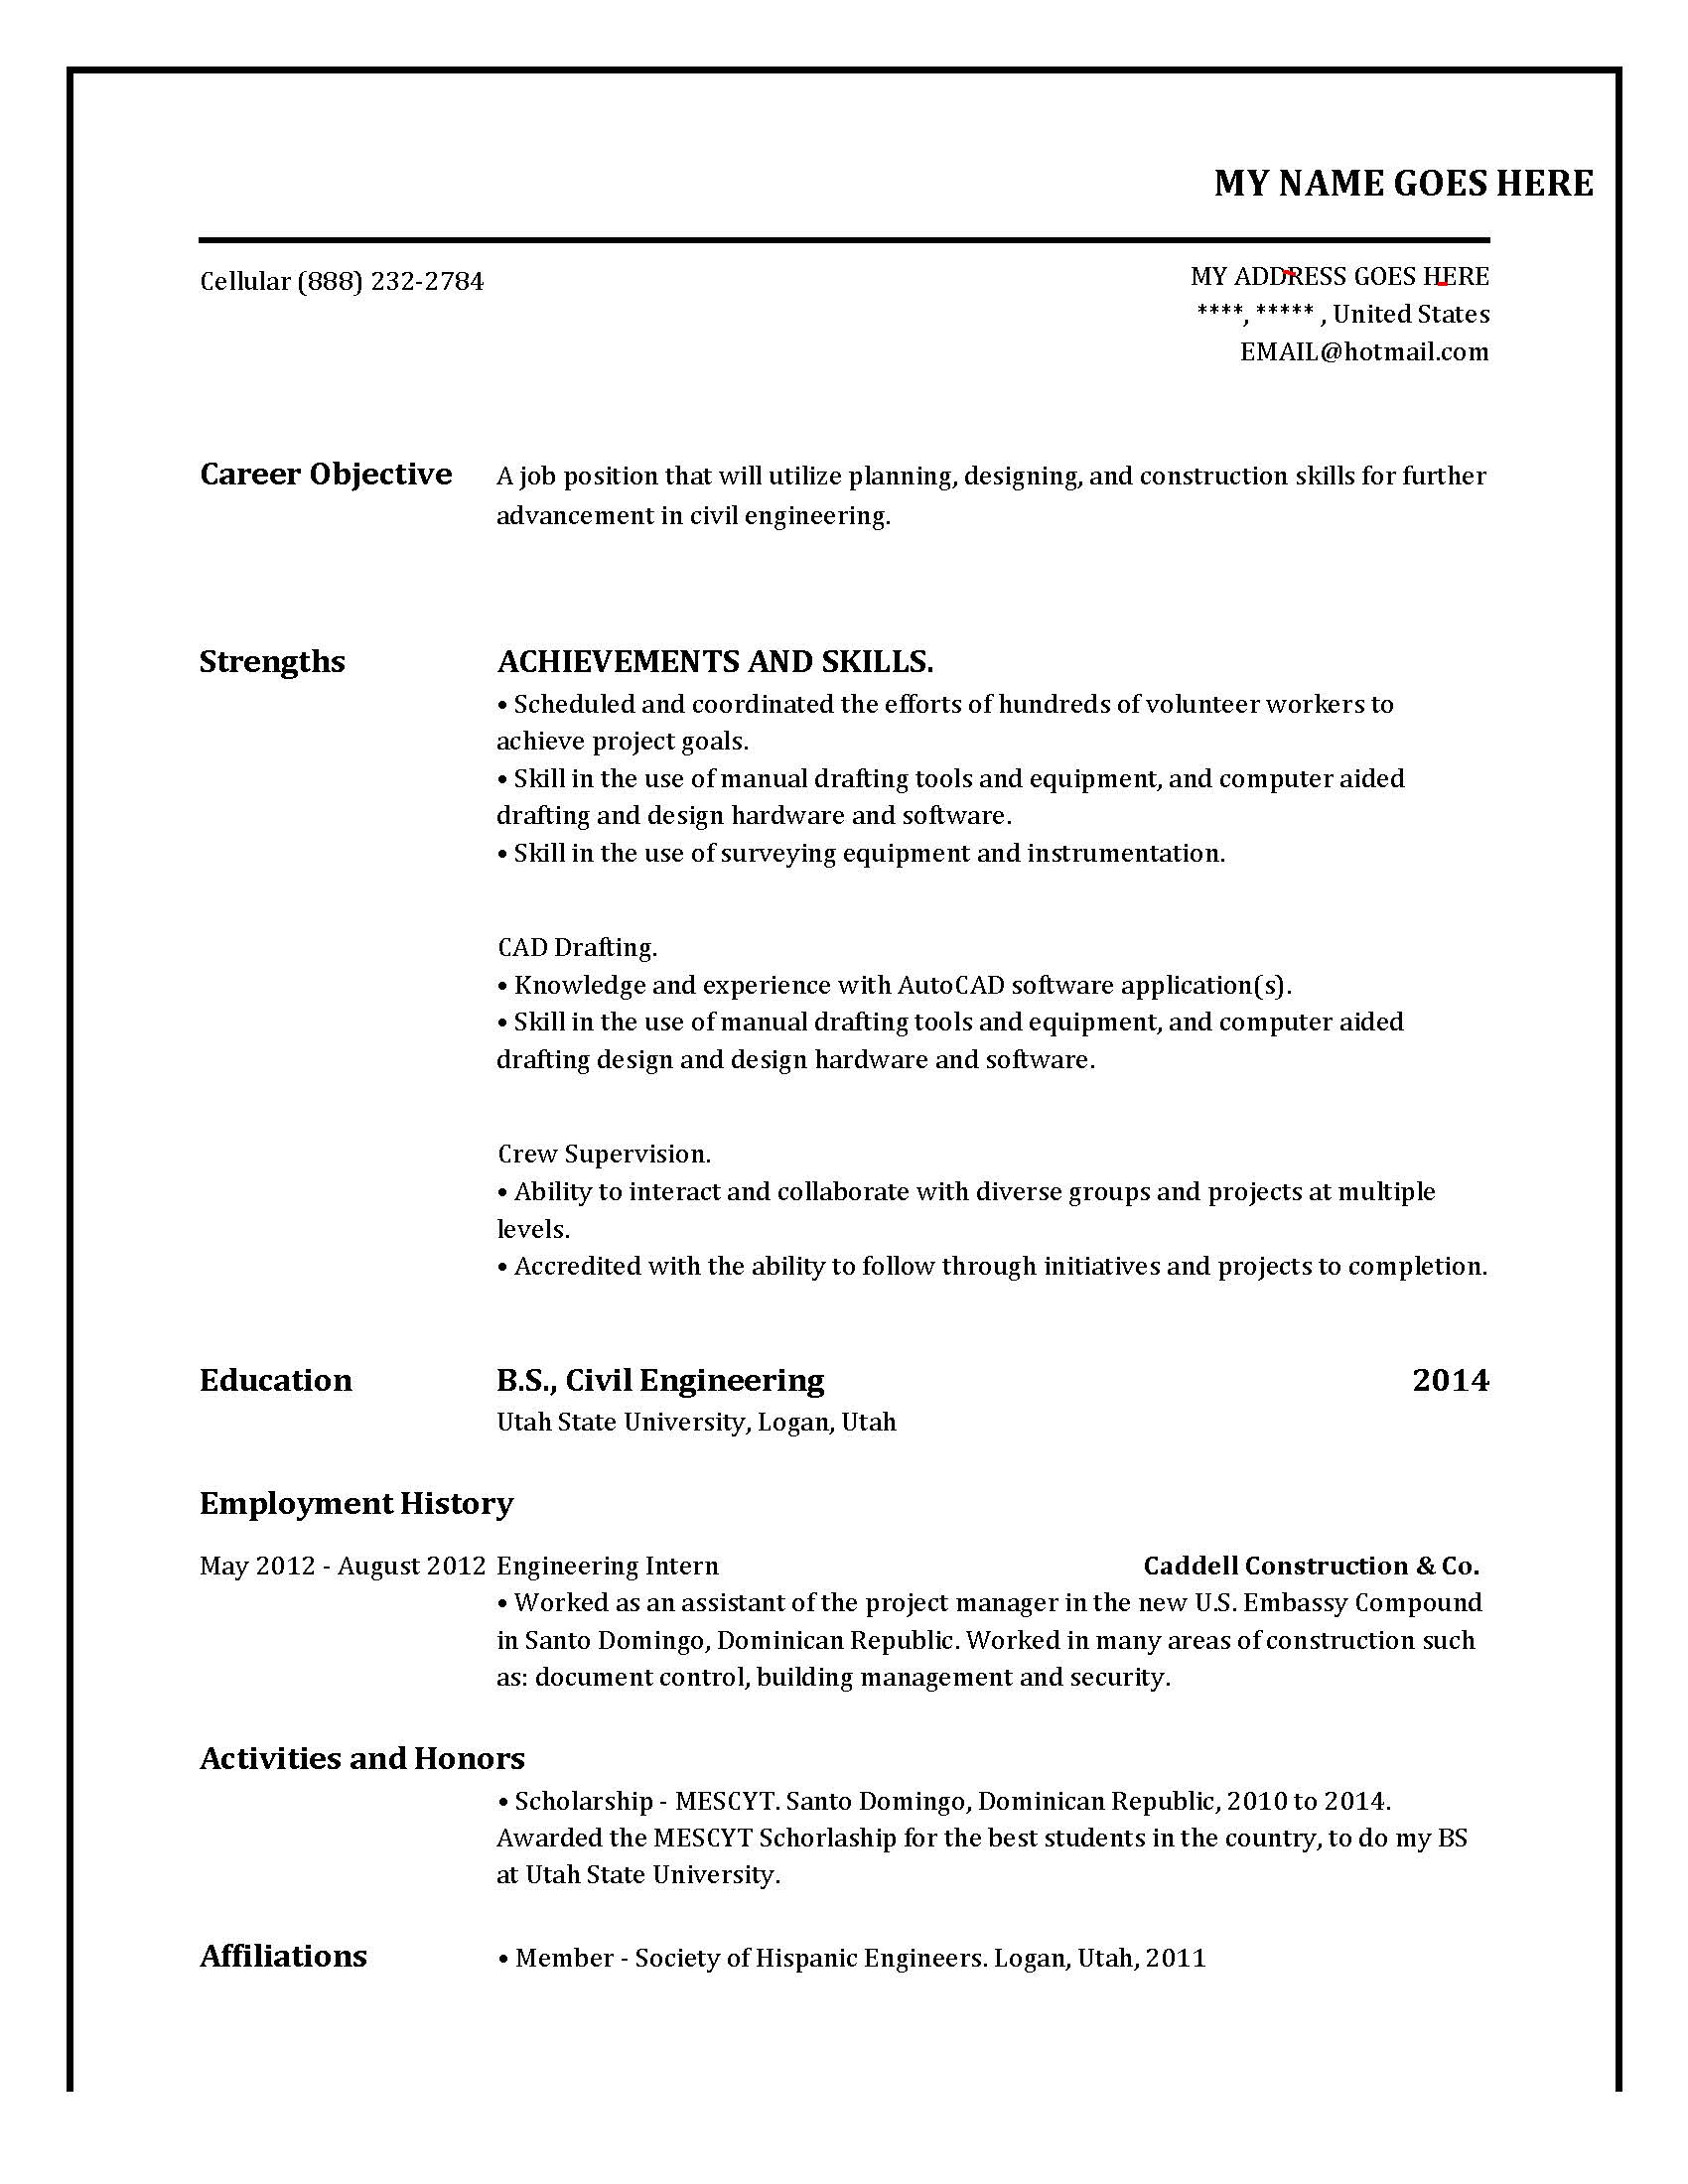 cover letter does my resume best